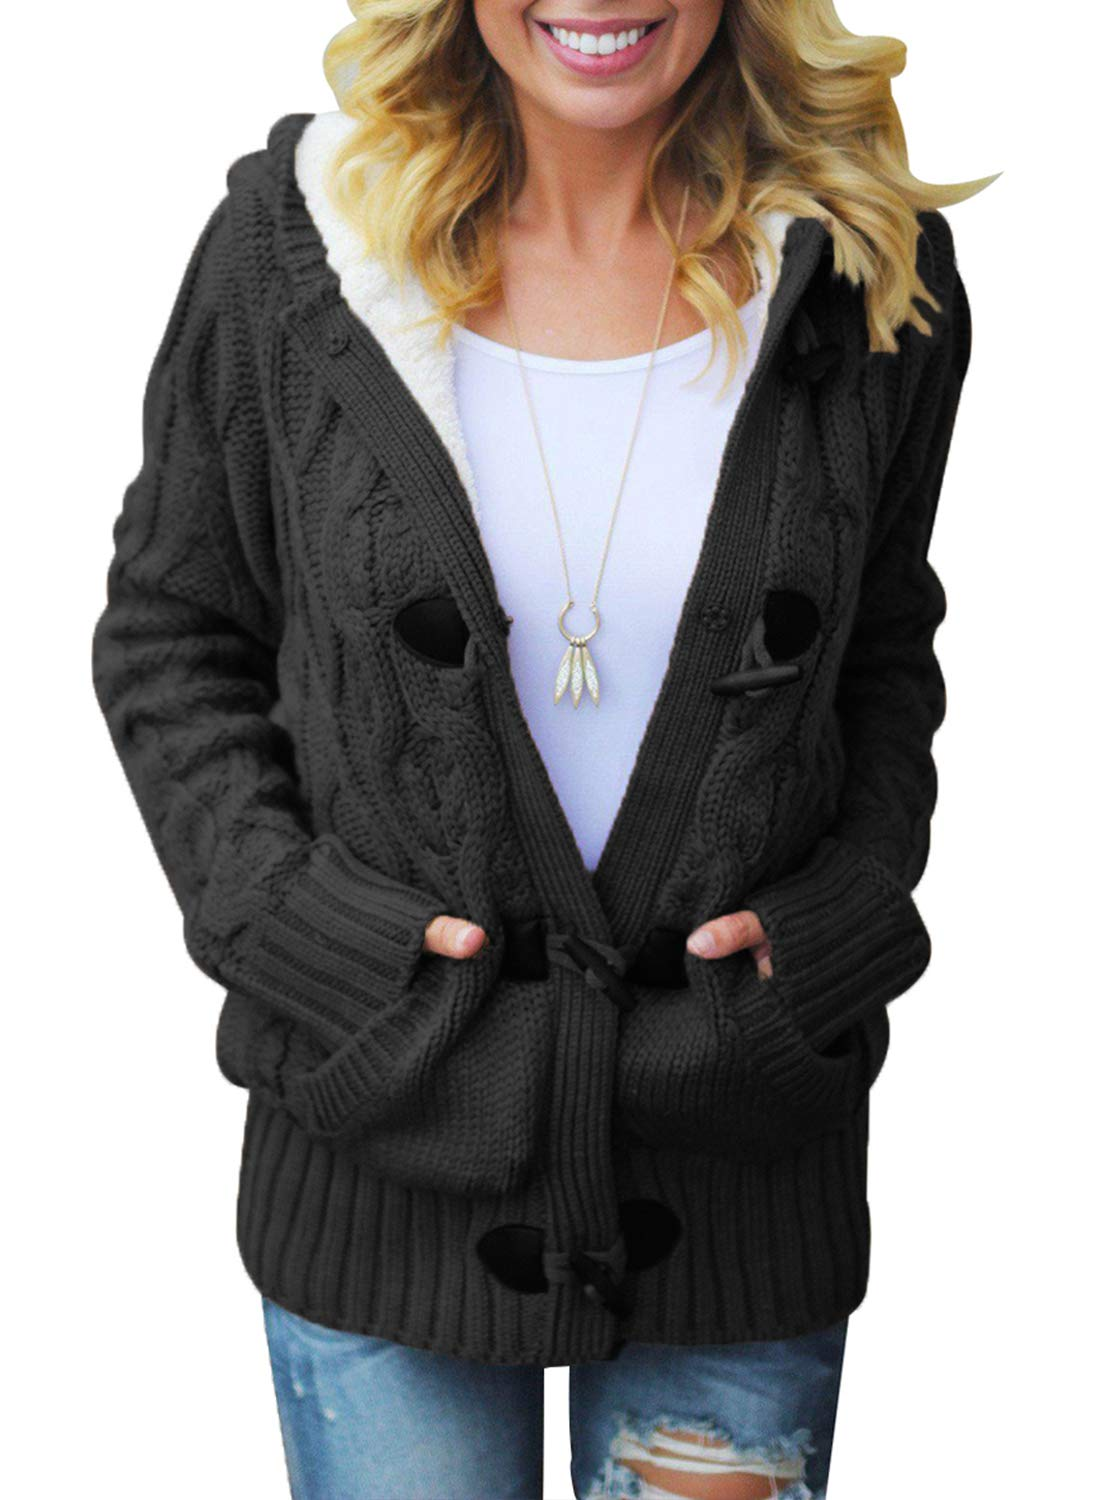 Dokotoo Womens Fashion Regular Plus Size Winter Hooded Casual Cardigans Solid Open Front Long Sleeve Cable Knit Sweater Fleece Coat Outwear Black X-Large